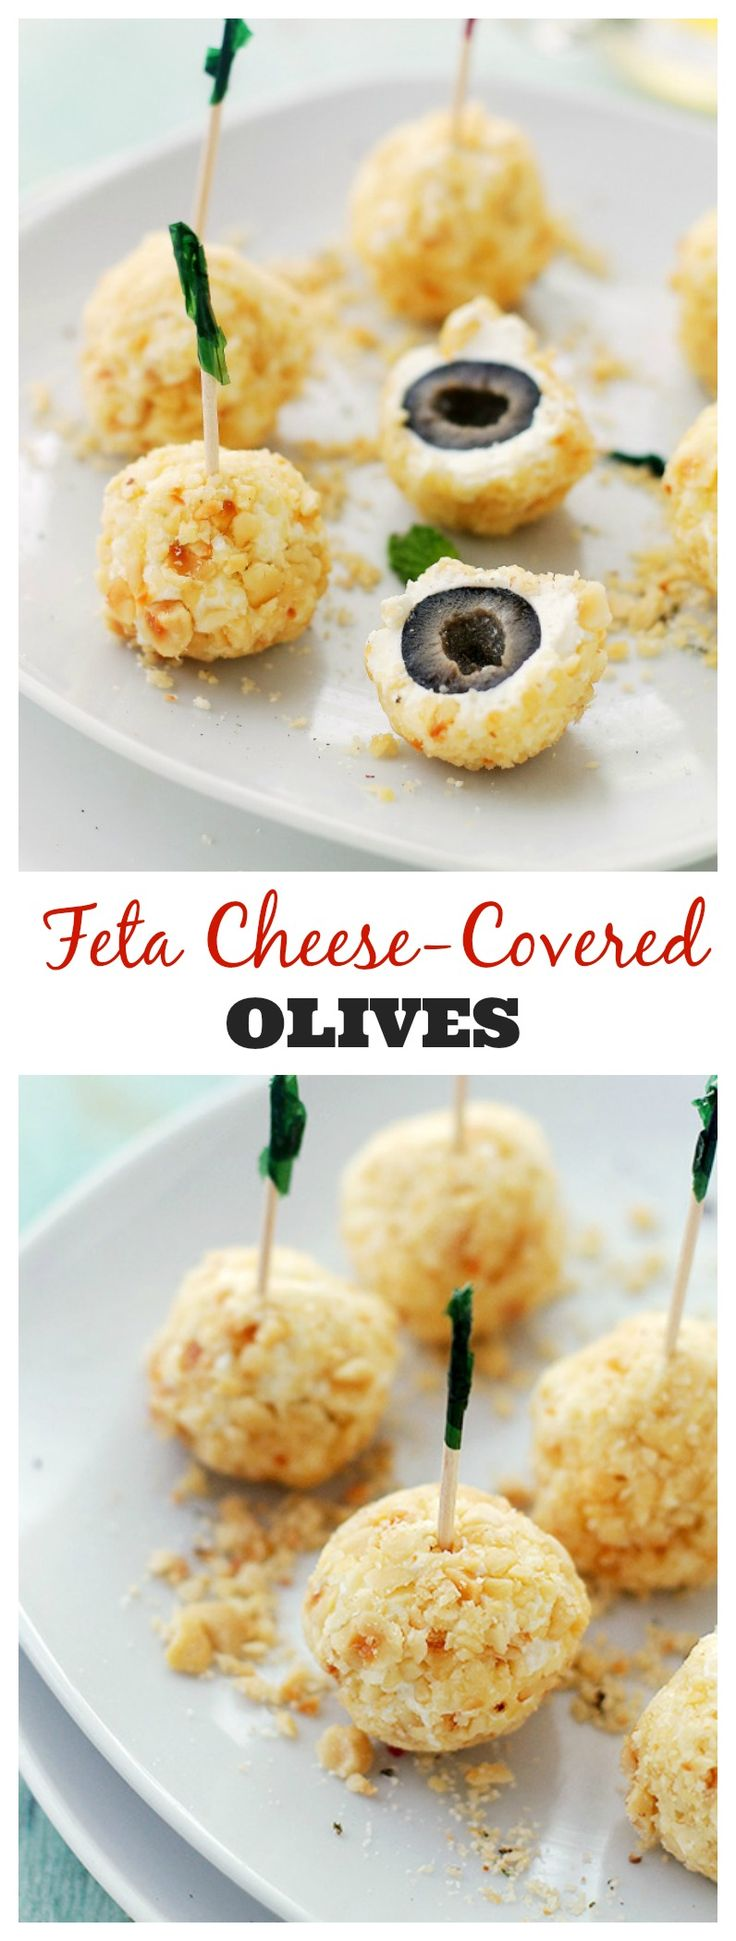 Feta Cheese-Covered Olives is a fun and incredibly flavorful appetizer made with olives covered in a feta cheese mixture and rolled in crushed hazelnuts. Get the recipe on diethood.com